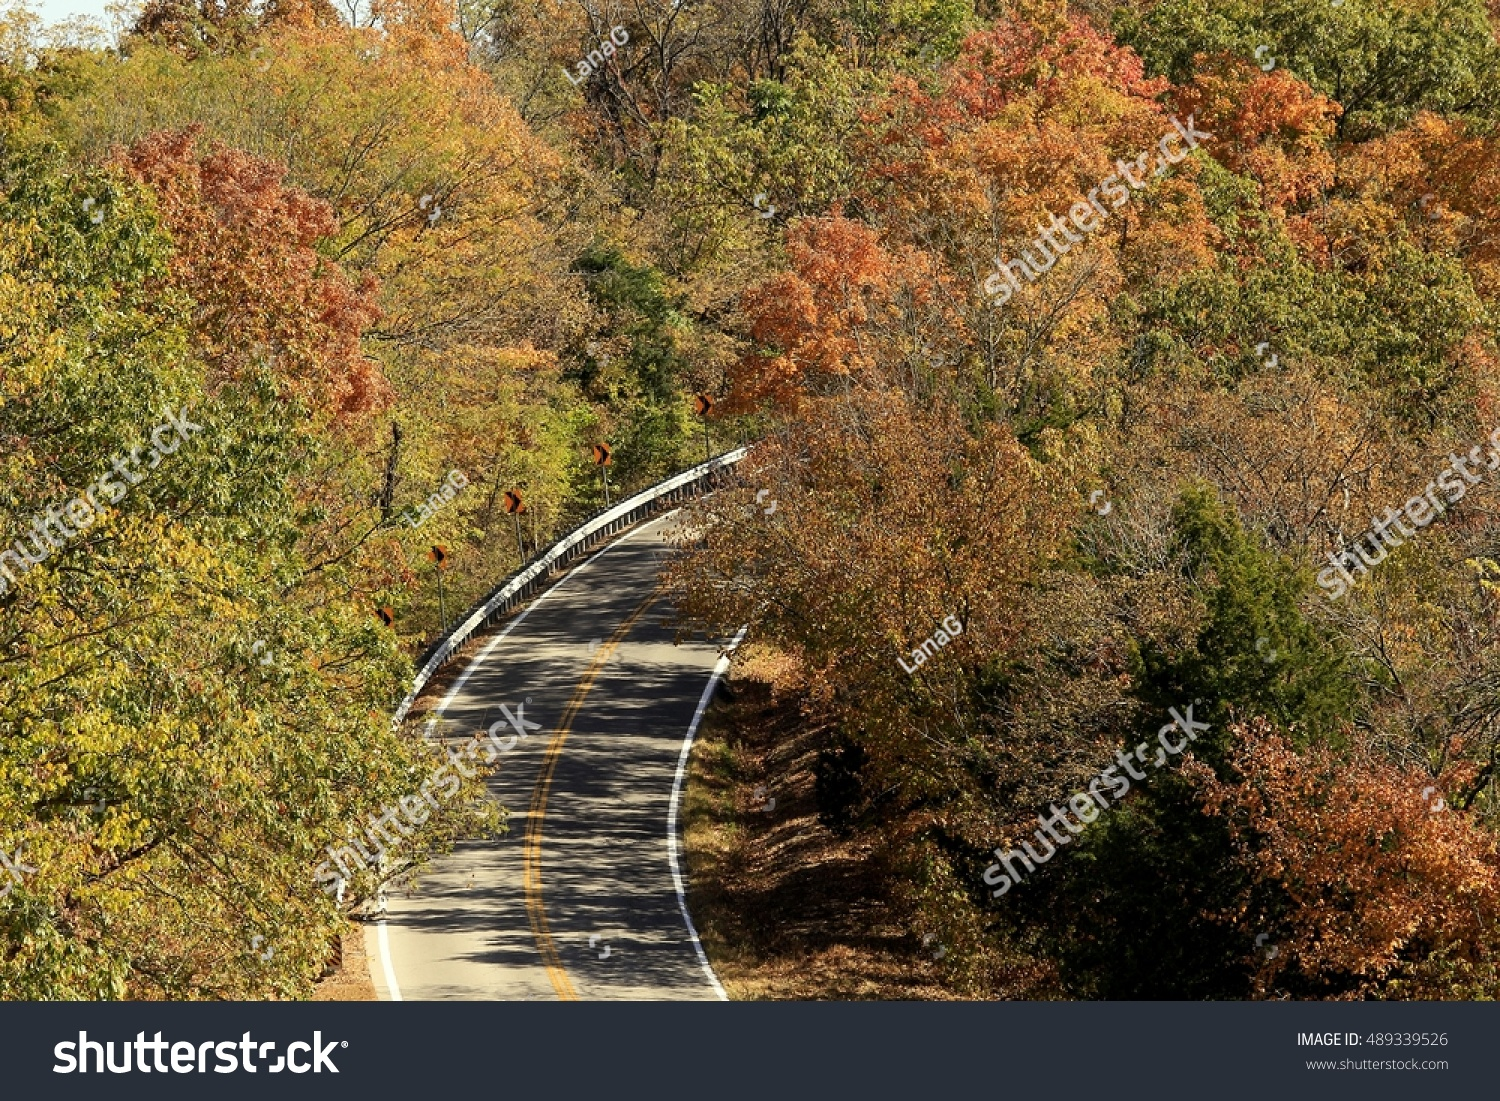 Royaltyfree 1 Hilly road between maple trees 489339526 Stock